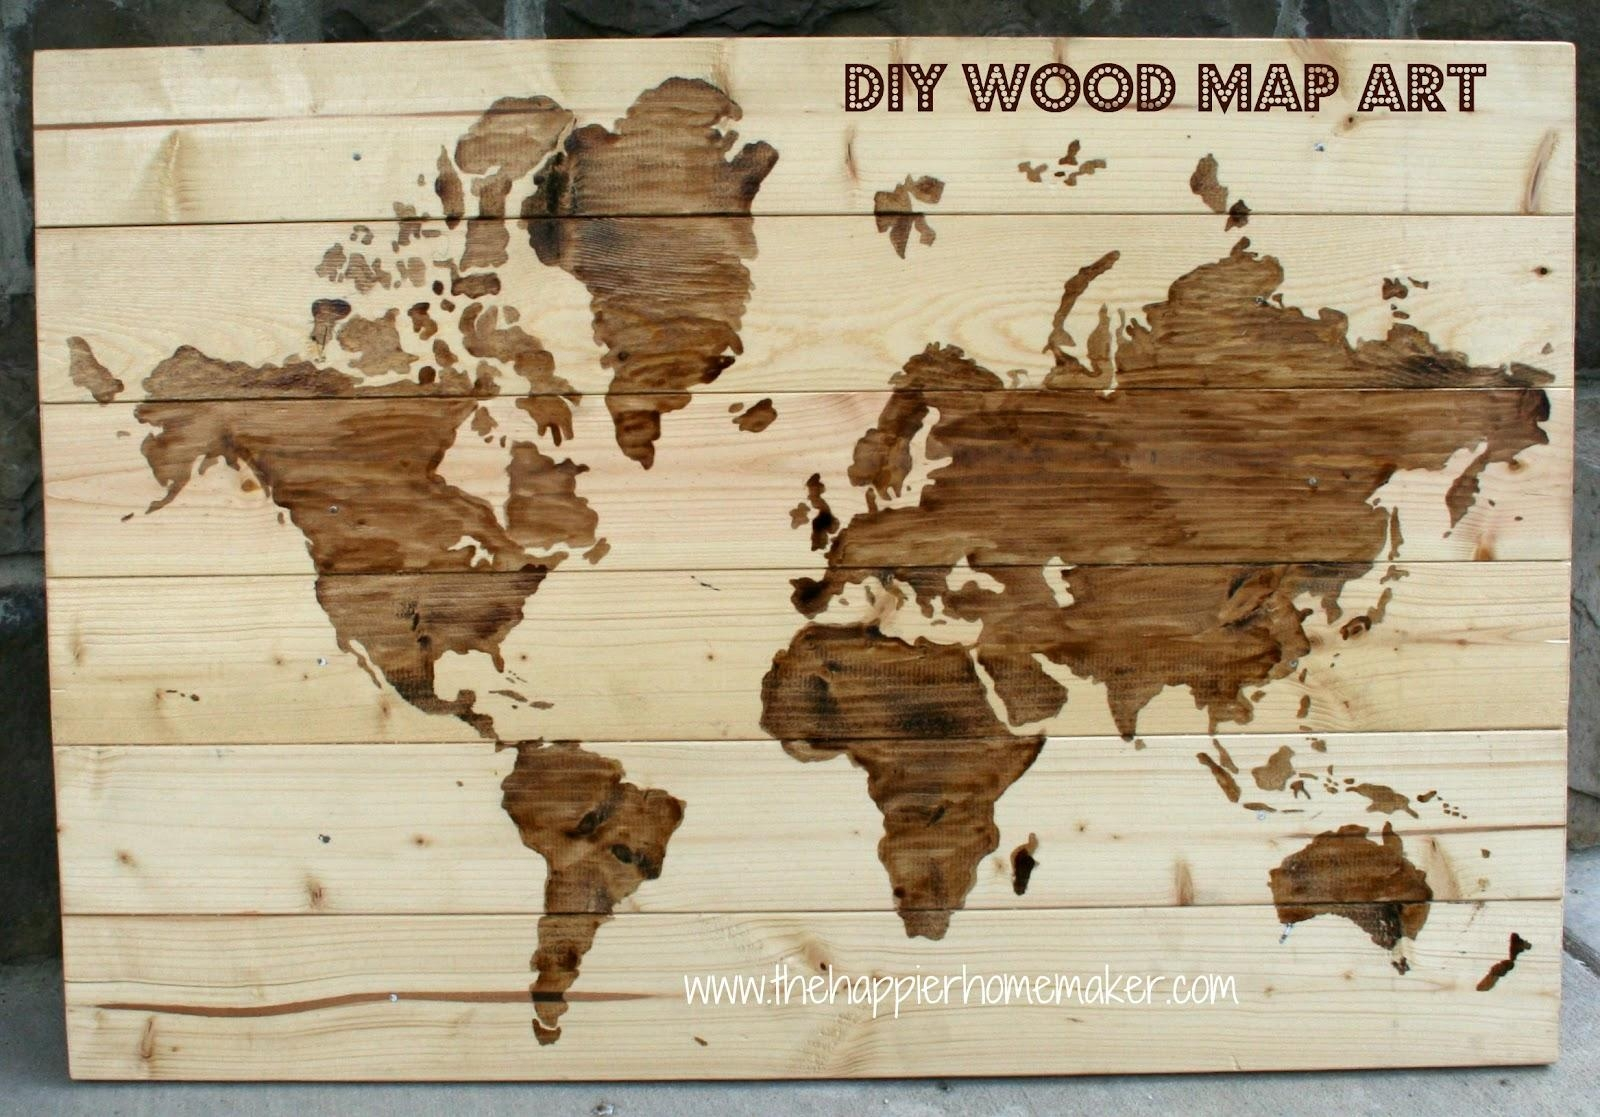 Diy Wooden World Map Art | The Happier Homemaker For World Map Wood Wall Art (Image 6 of 20)